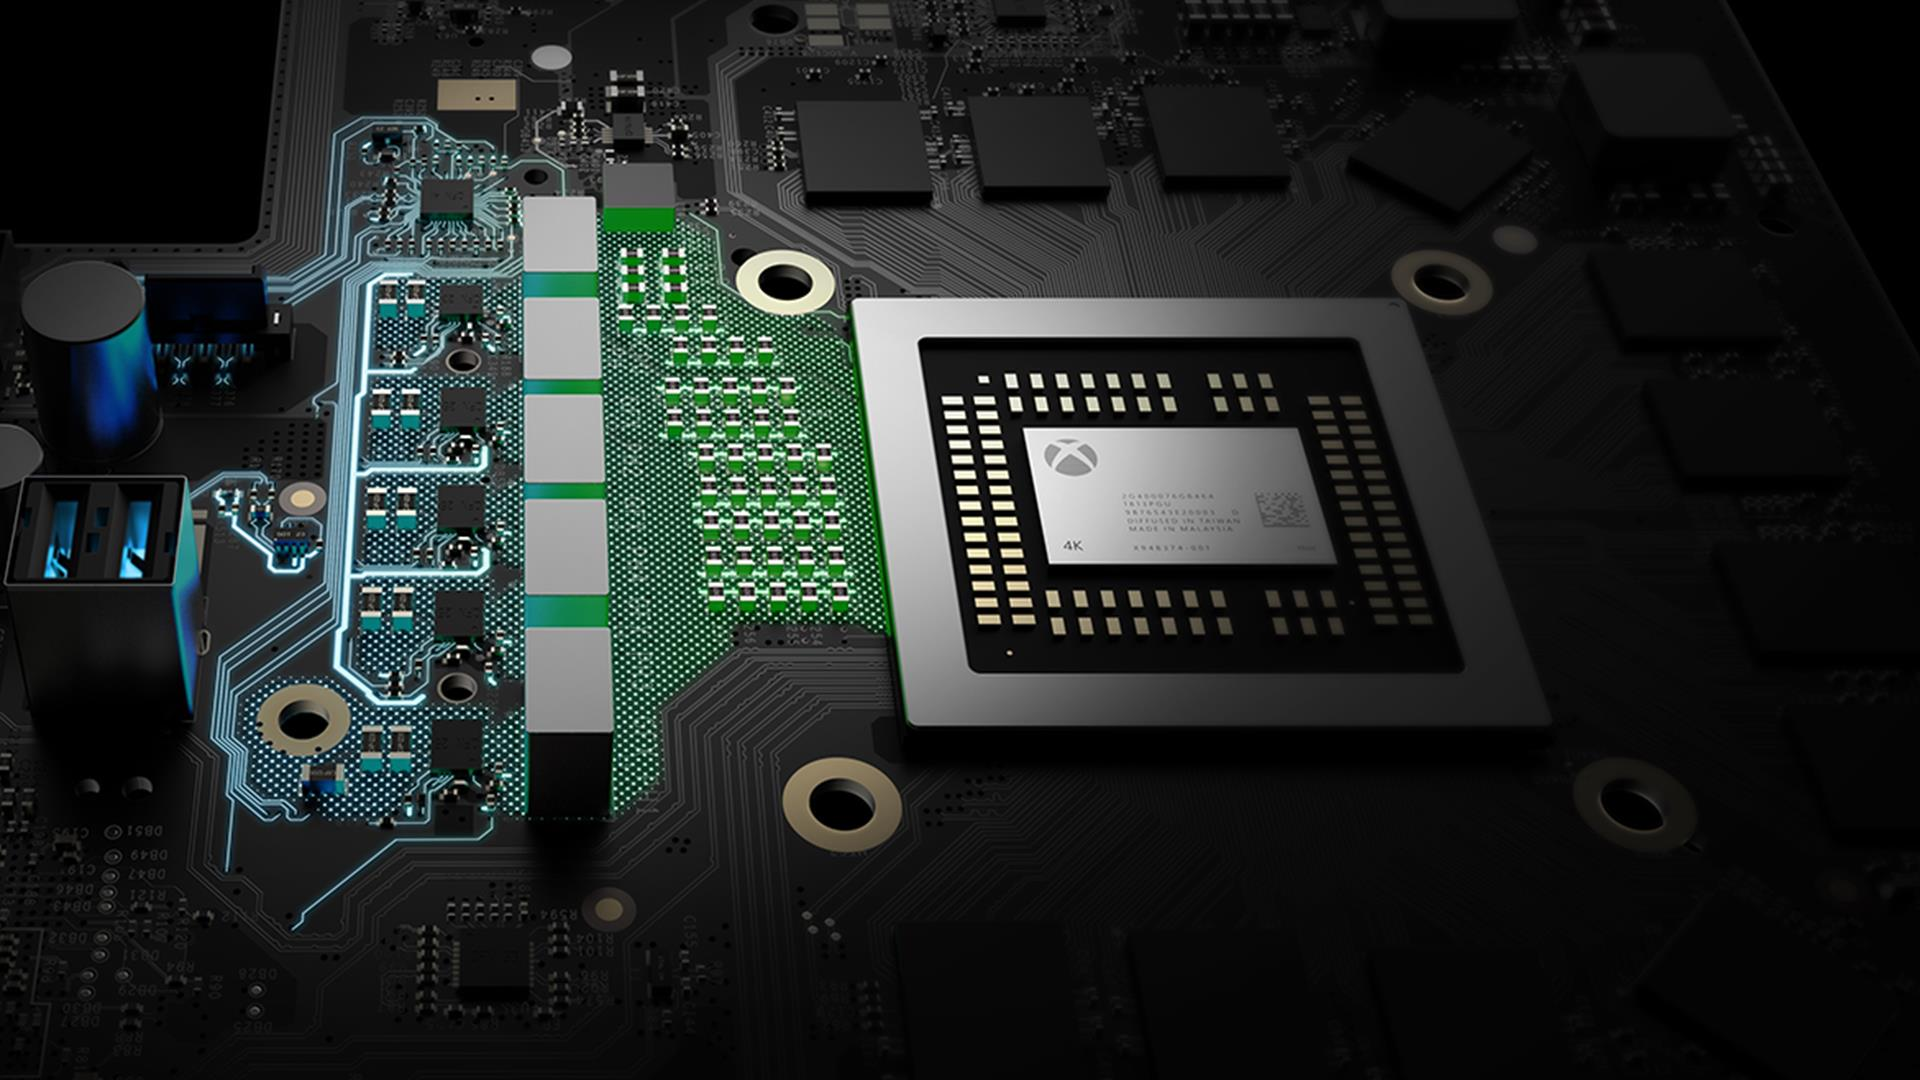 Microsoft Xbox Scorpio Specs: 'Integral' Xbox One feature DITCHED